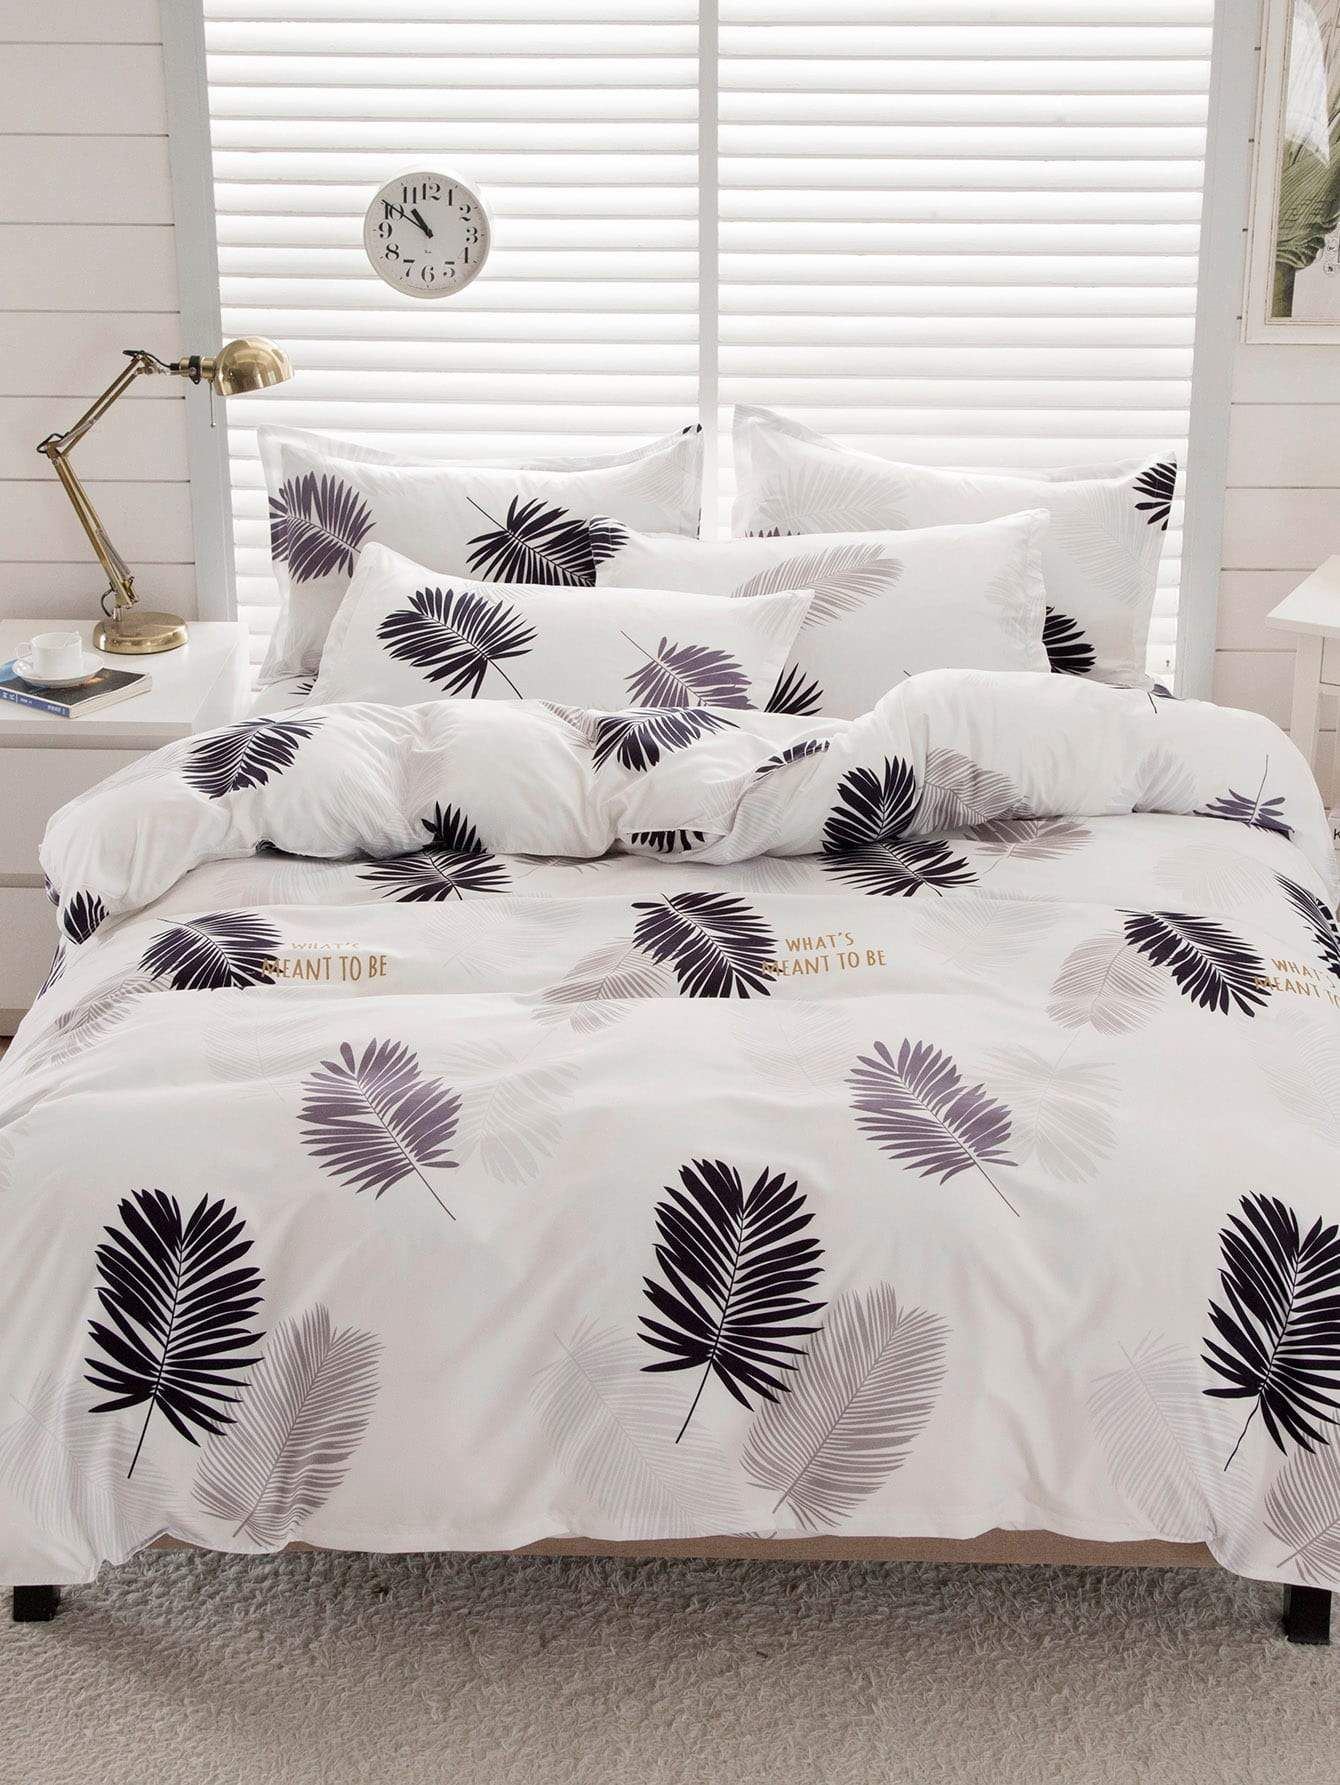 Leaf Print Pillowcase 1Pair in 2020 Bedding sets, Bed